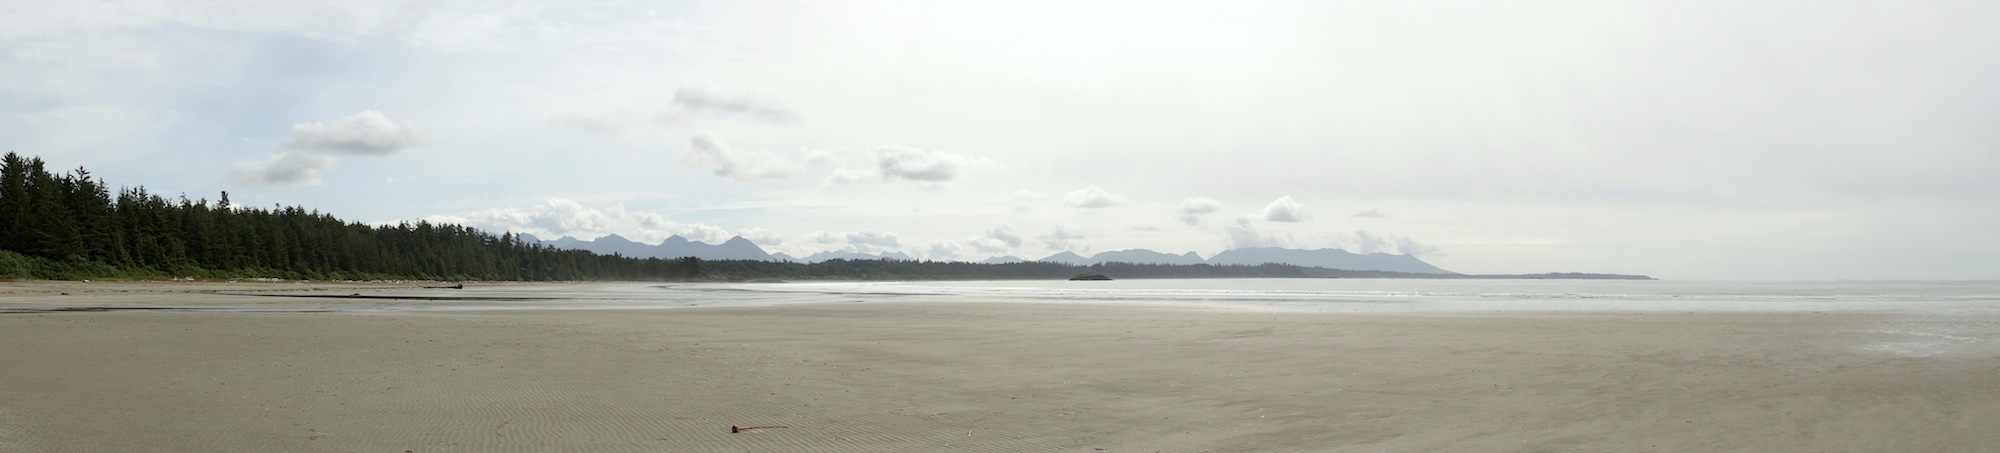 Tofino-long-beach